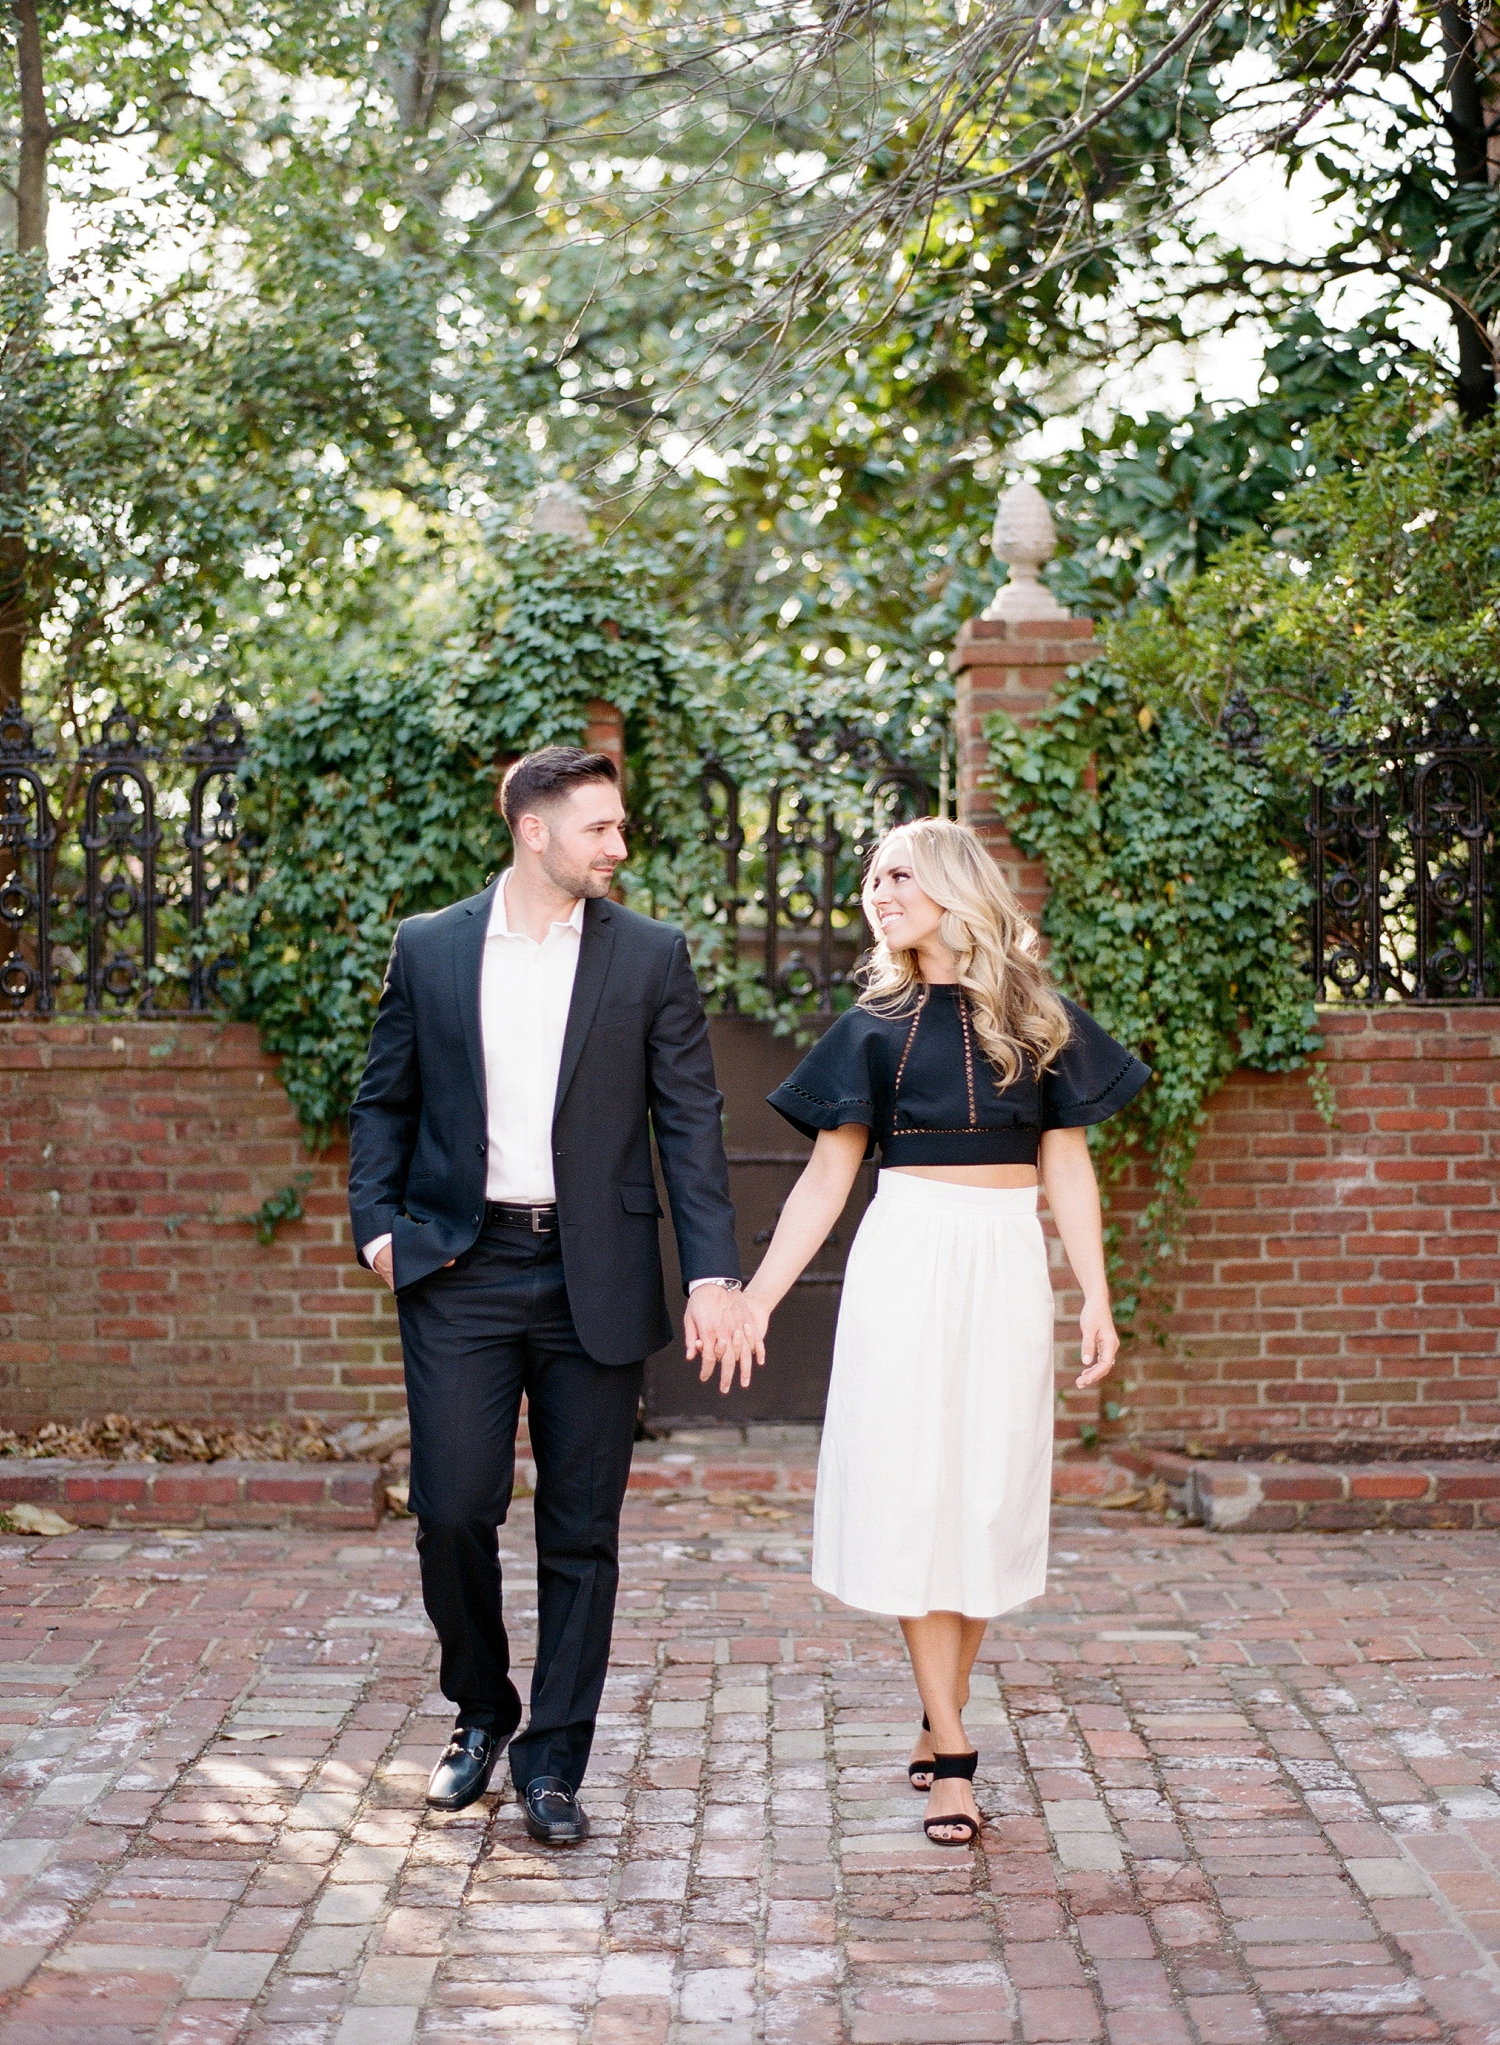 northern virginia engagement session on film, old town